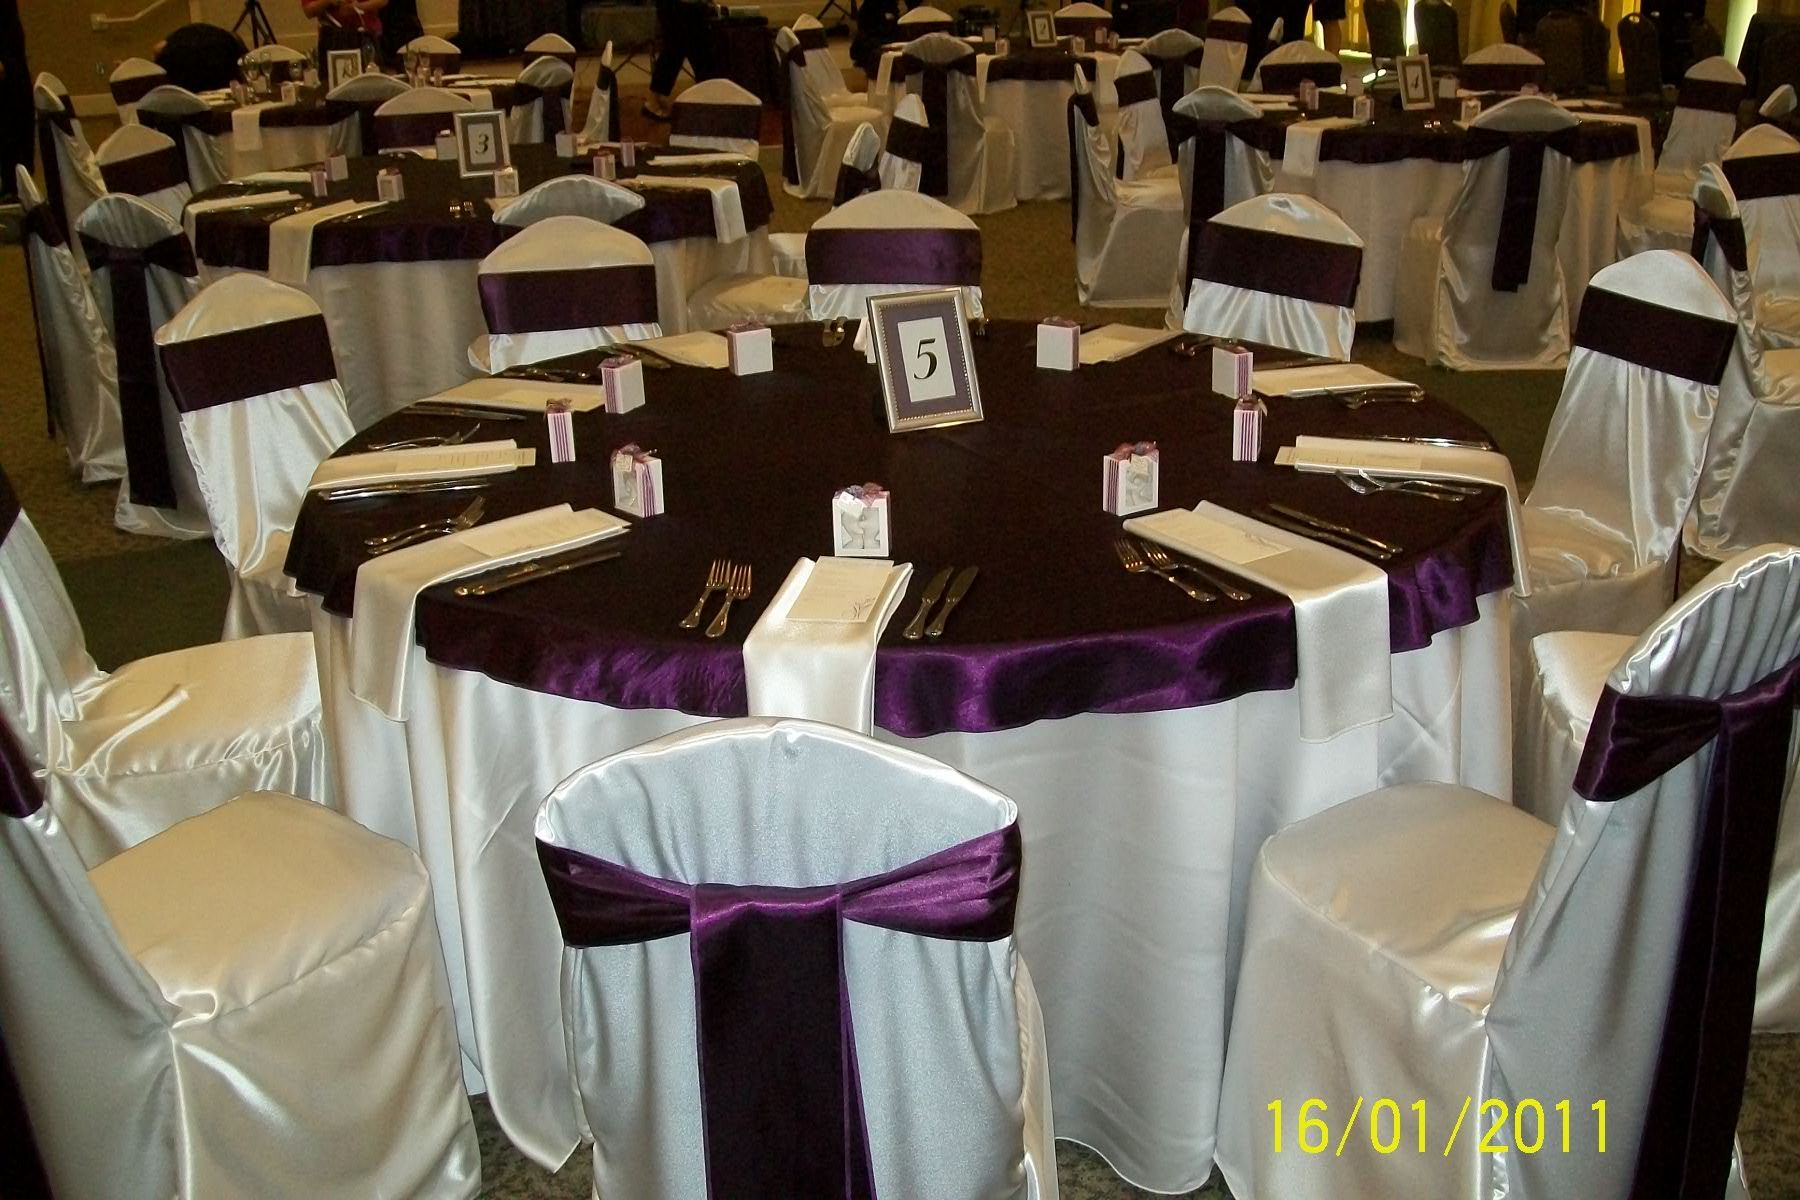 Table And Chair Rentals In Delaware Club Chairs Leather Swivel Ivory Satin Base Linen With Eggplant Plum Quotcap